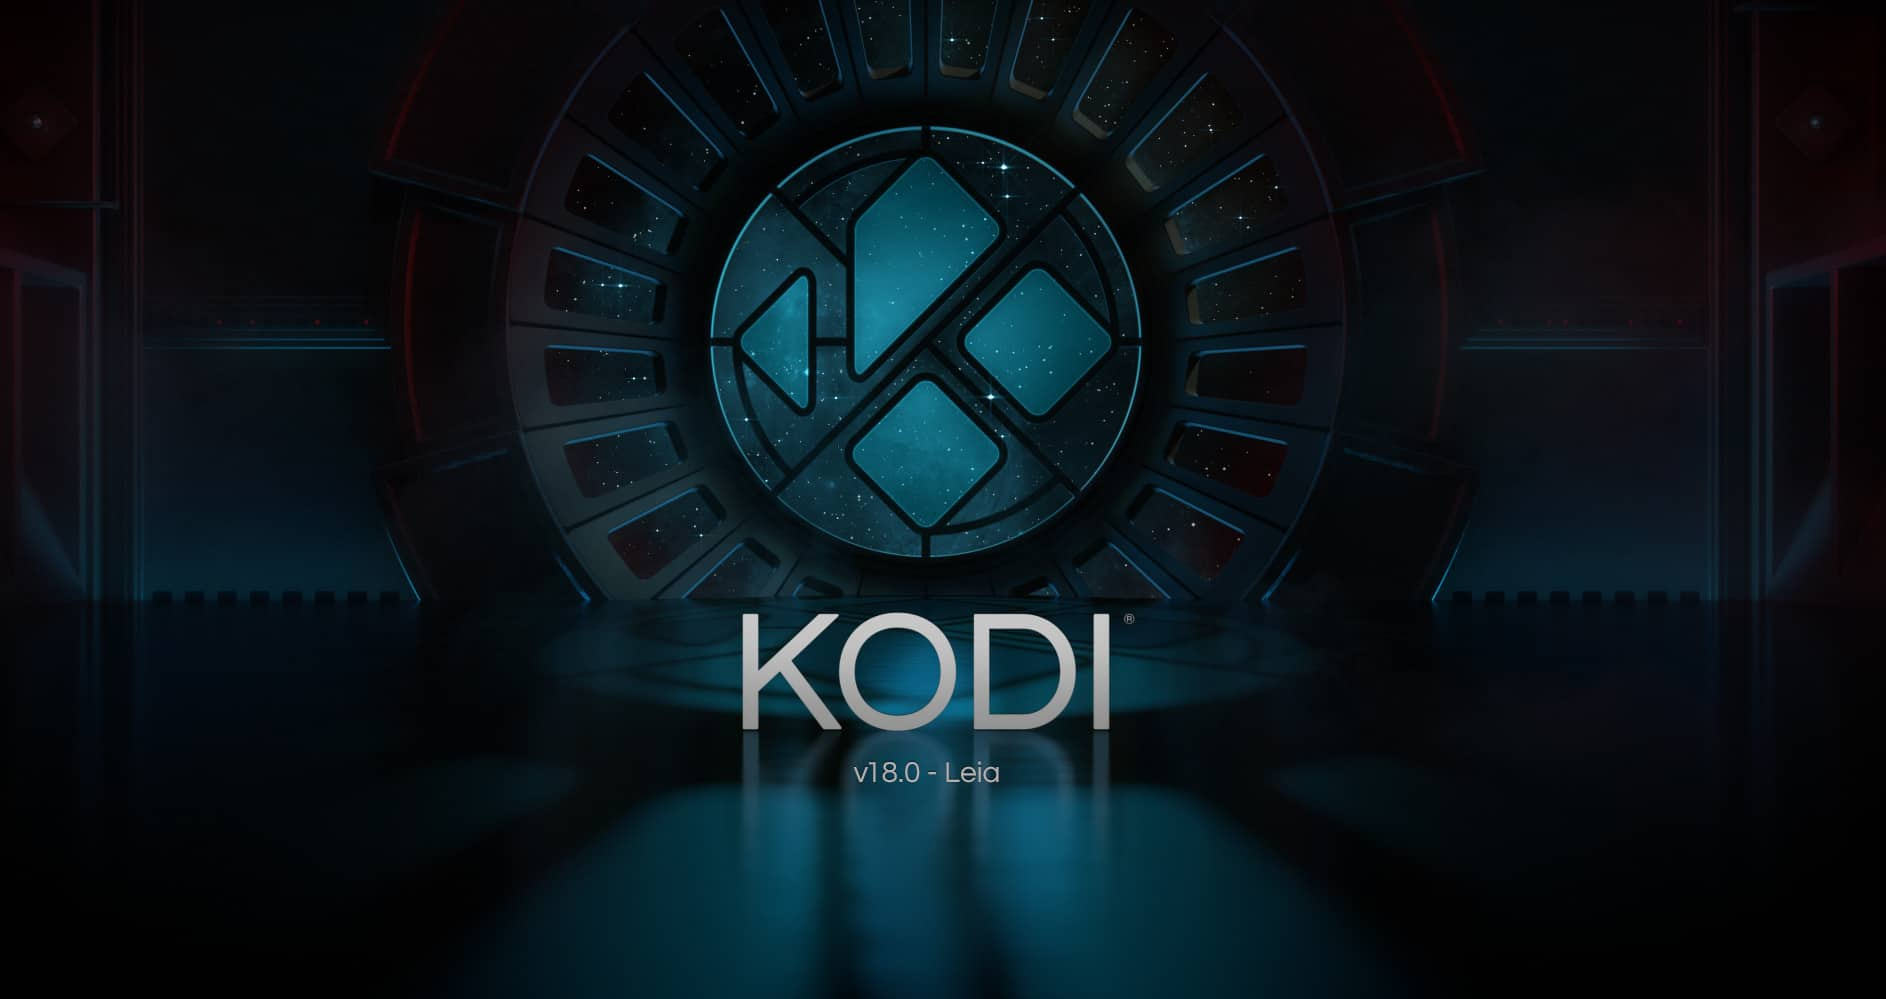 How to Install Kodi 18 on Android TV Box